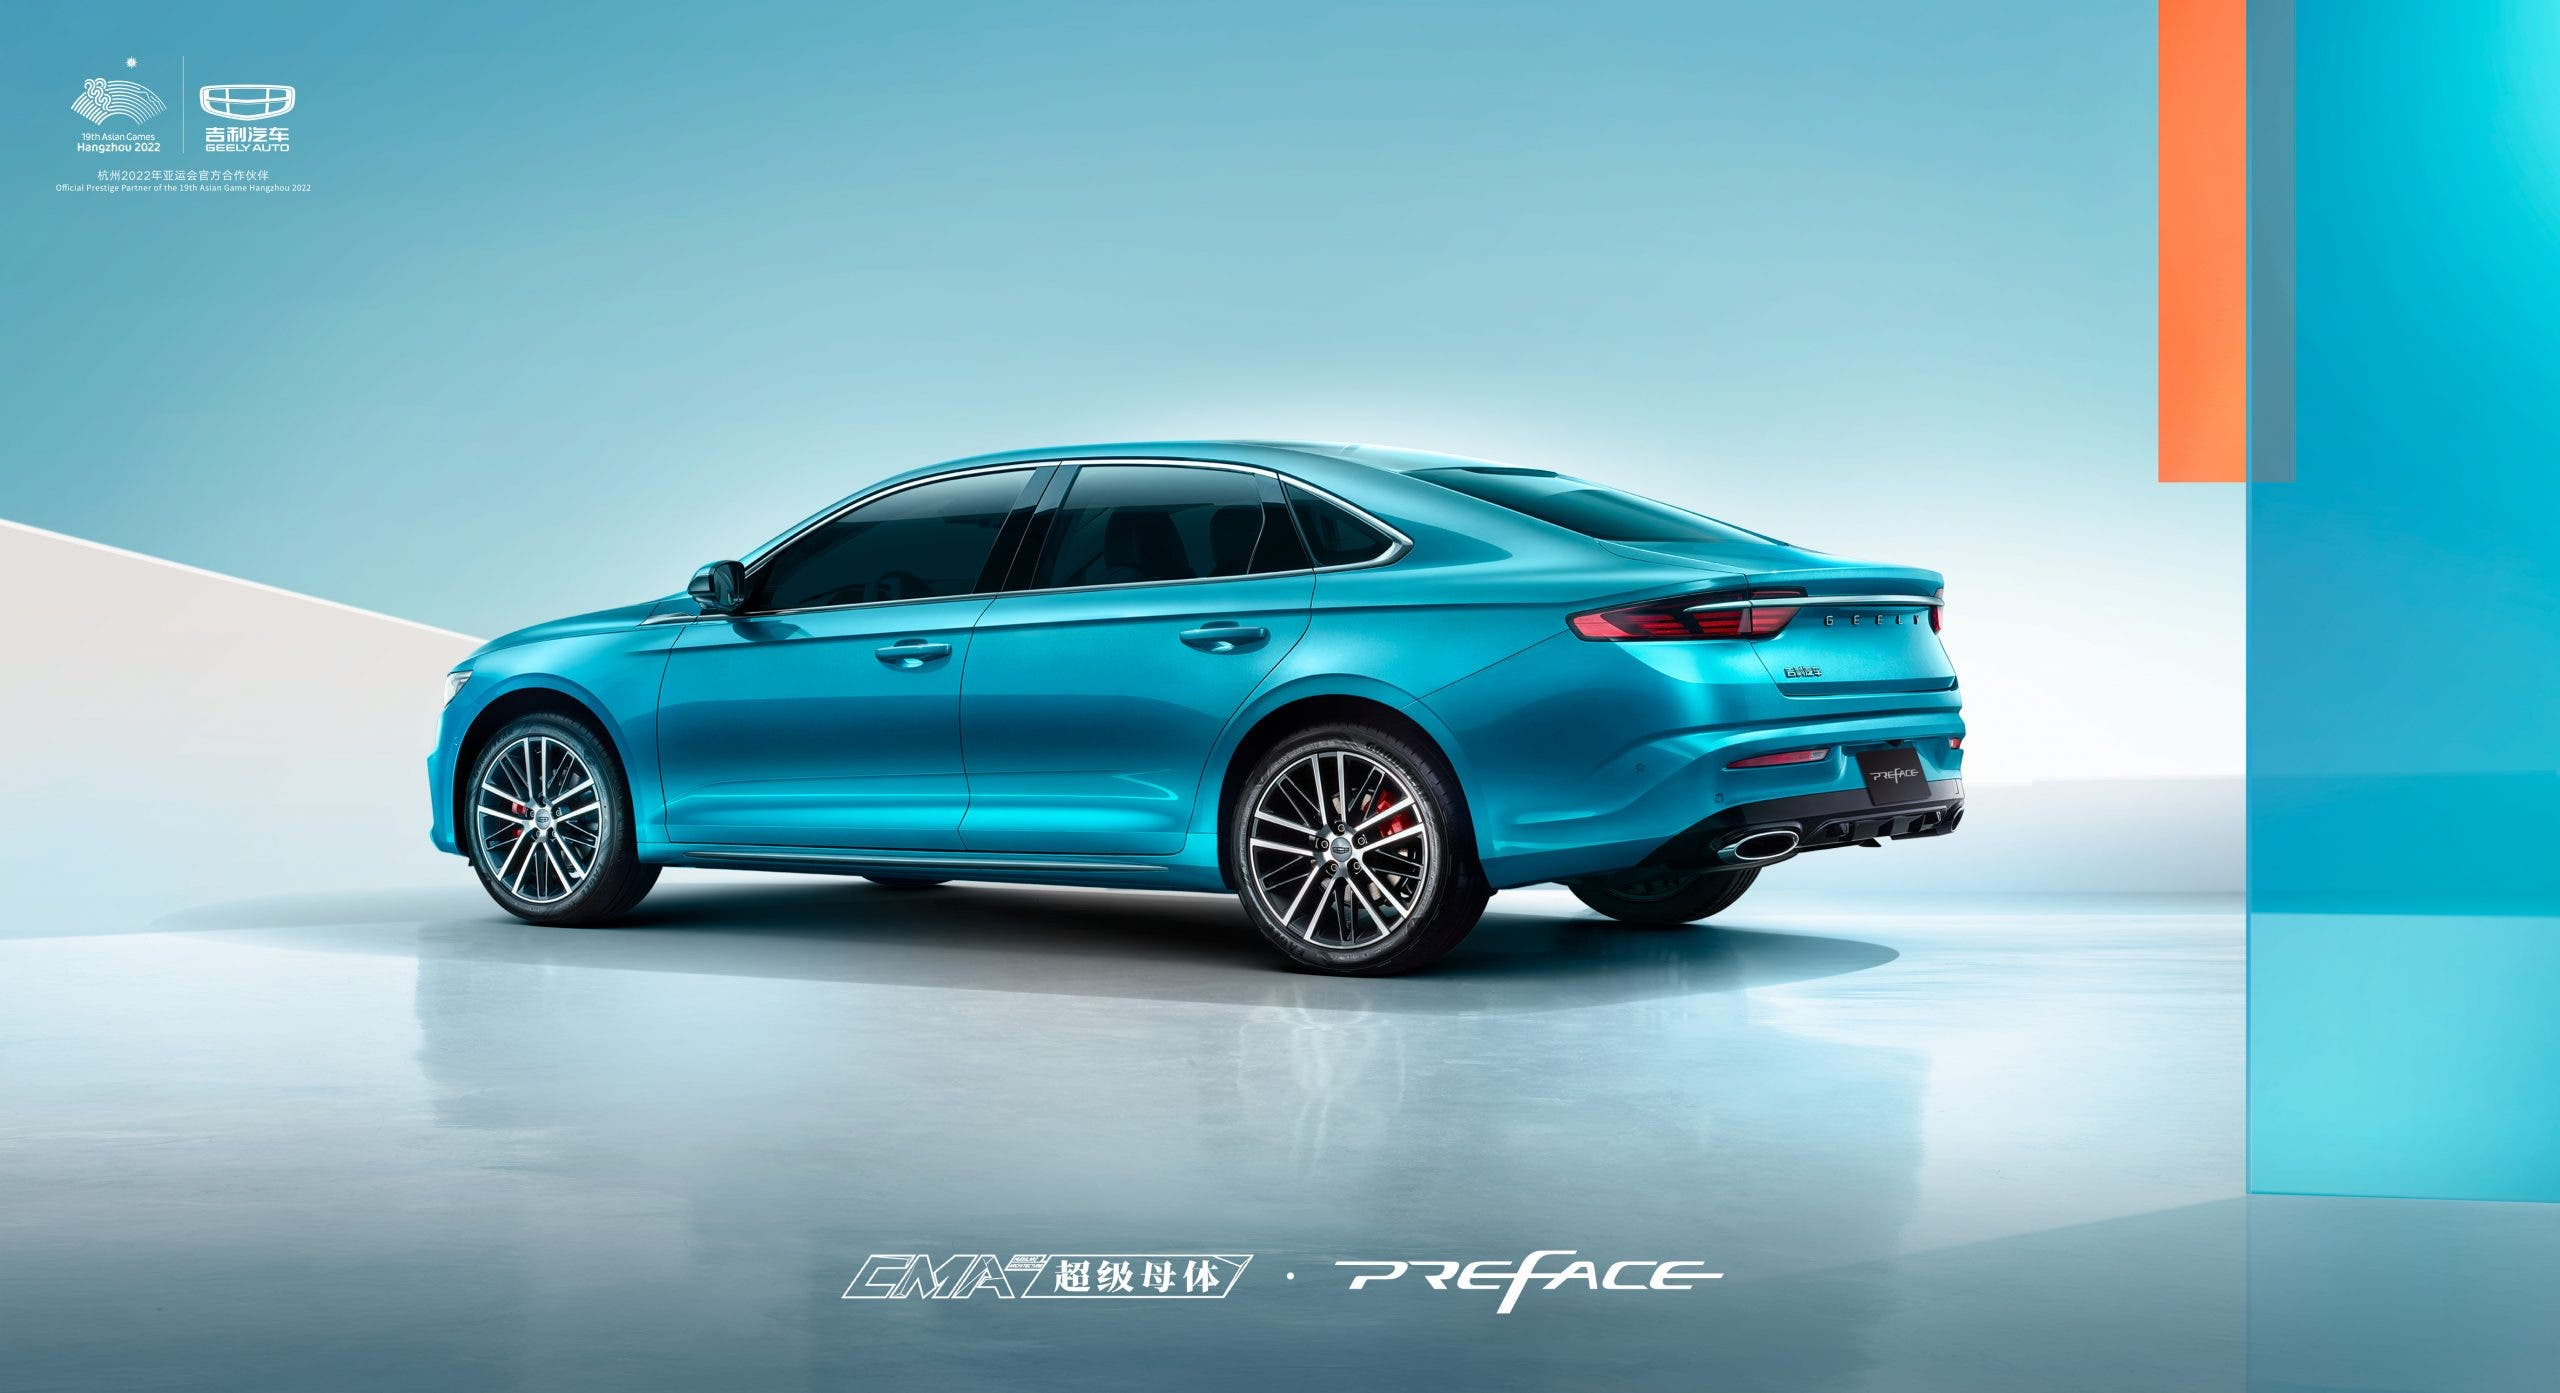 2020 Geely Preface